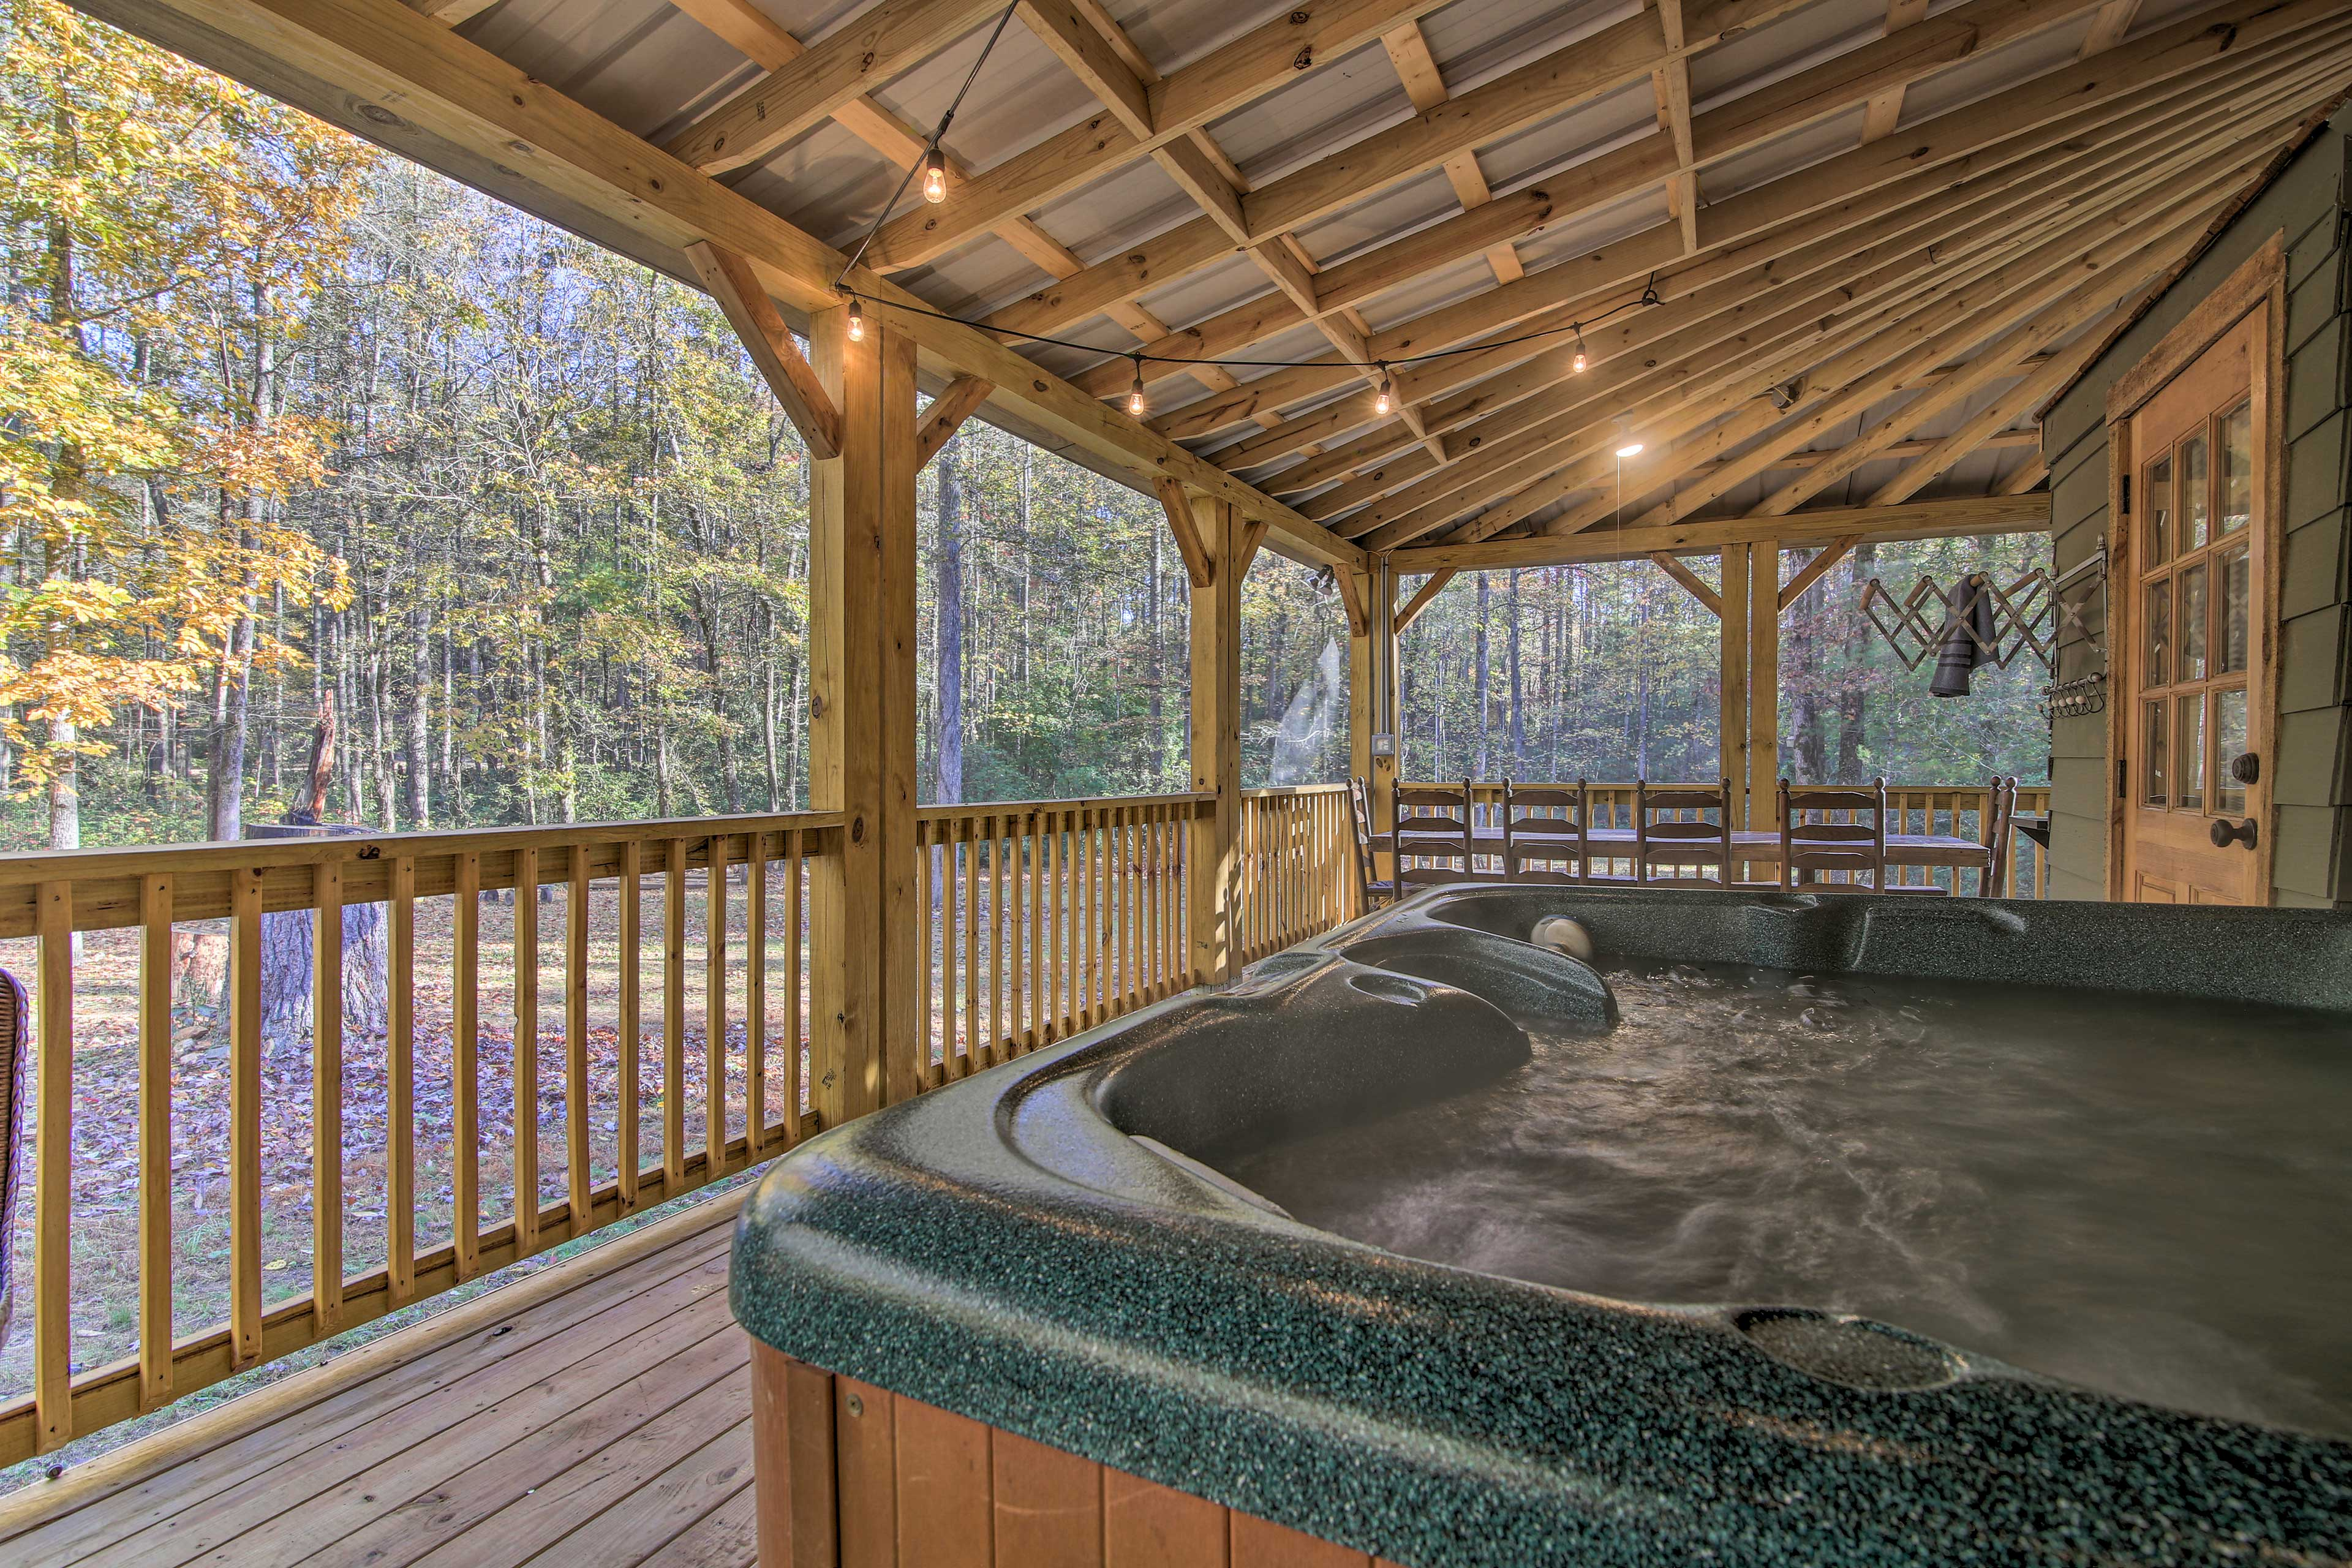 Take a relaxing soak in the hot tub on the screened-in porch!